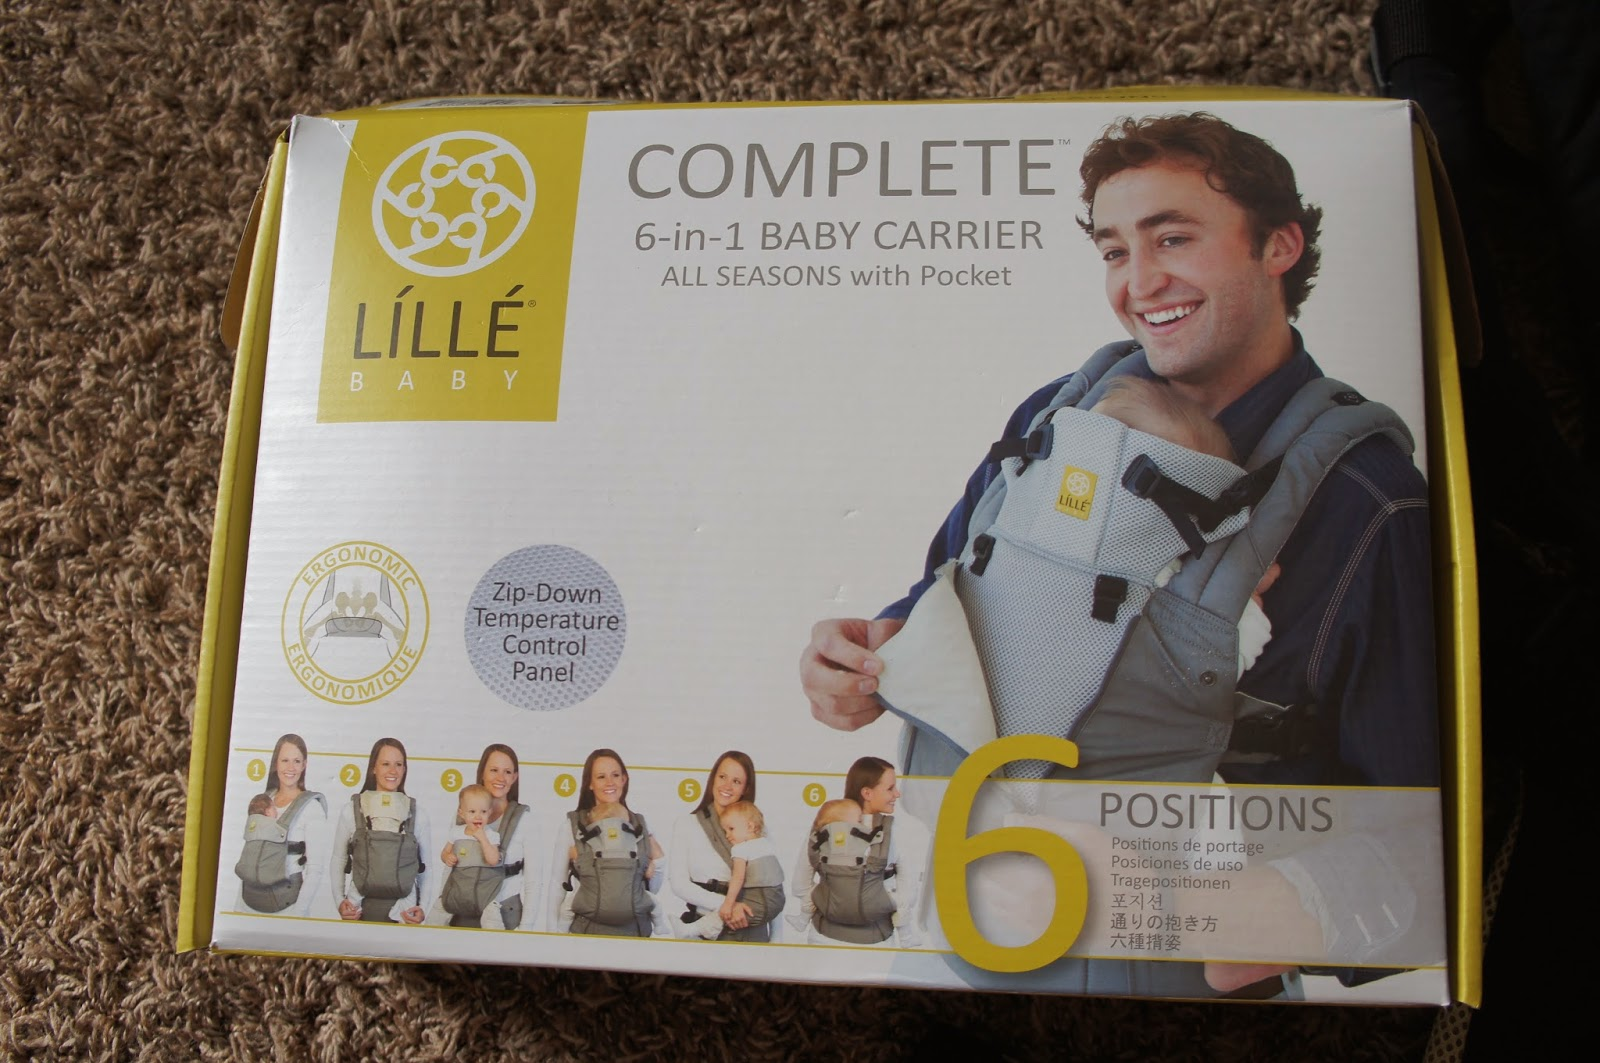 lillebaby complete all seasons manual